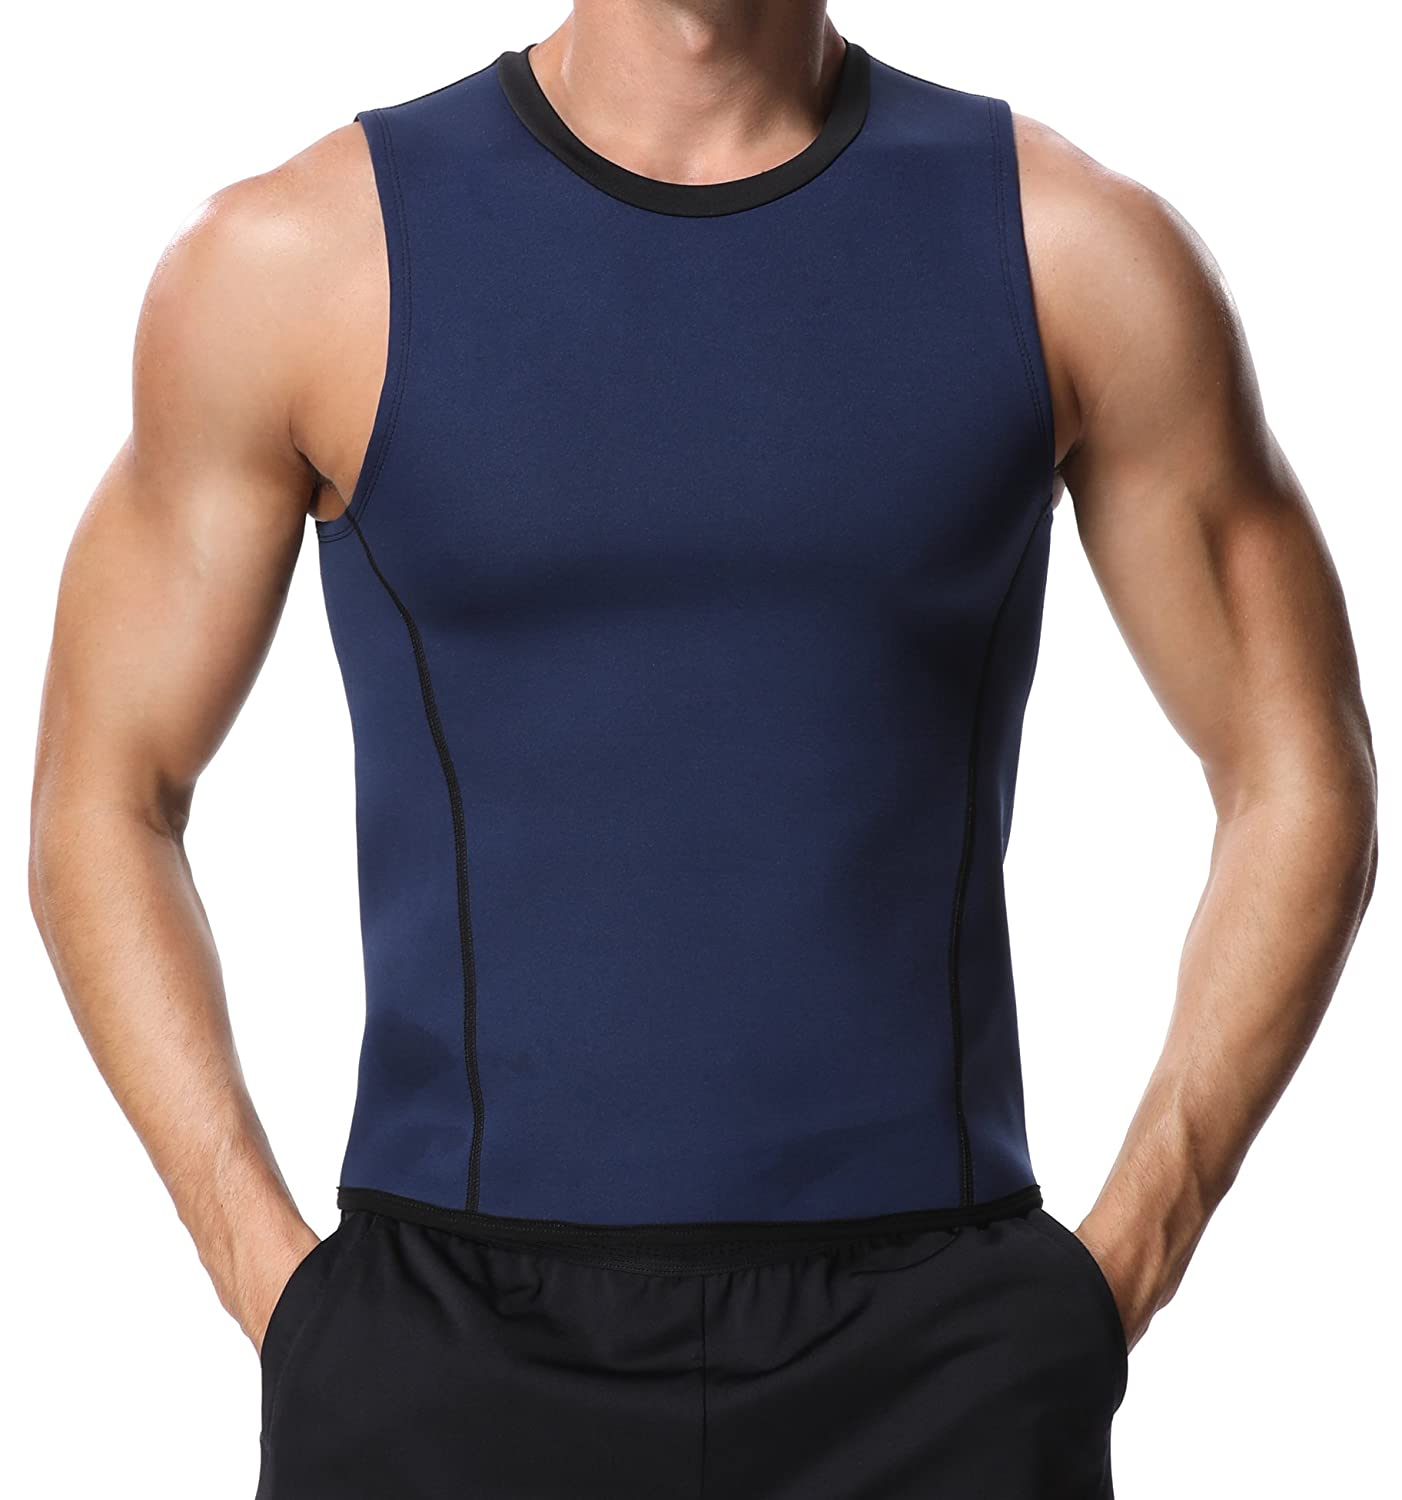 c199f88dbe Amazon.com  MISS MOLY Men Slimming Shirt Black Neoprene Shaper Vest Hot  Sweat Workout Tank Top for Weight Loss (XL Fit Chest 46-50 inch